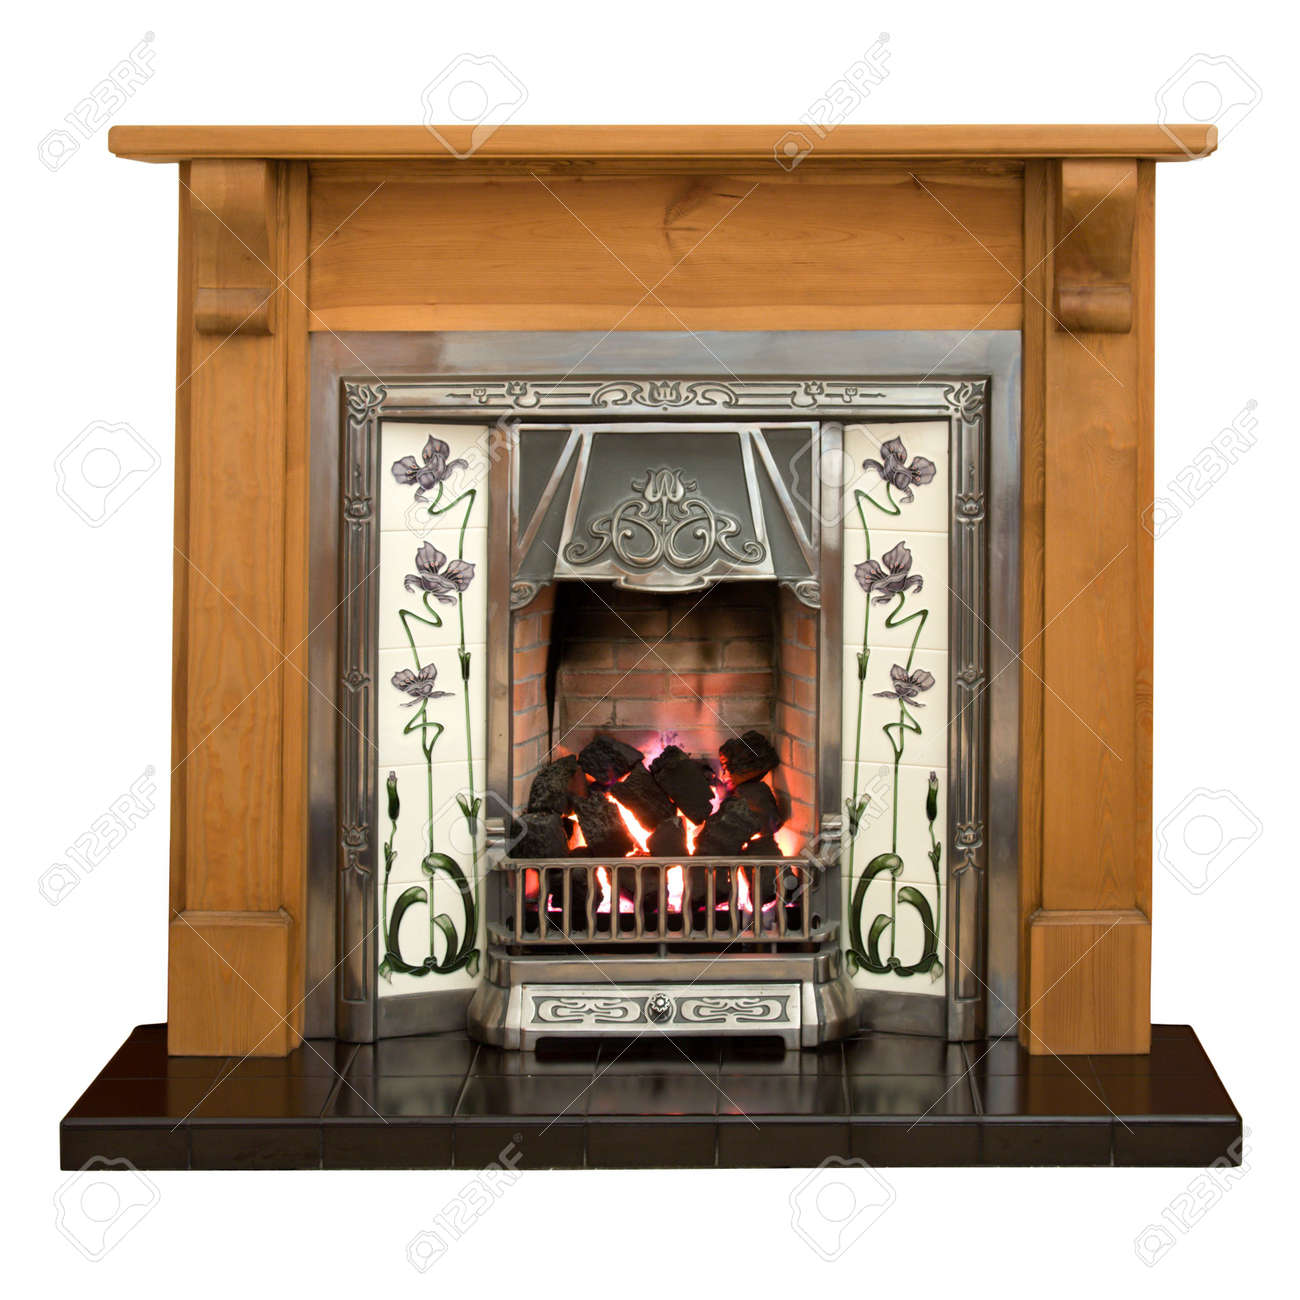 Victorian Style Tiled Fireplace With Pine Surround Stock Photo ...